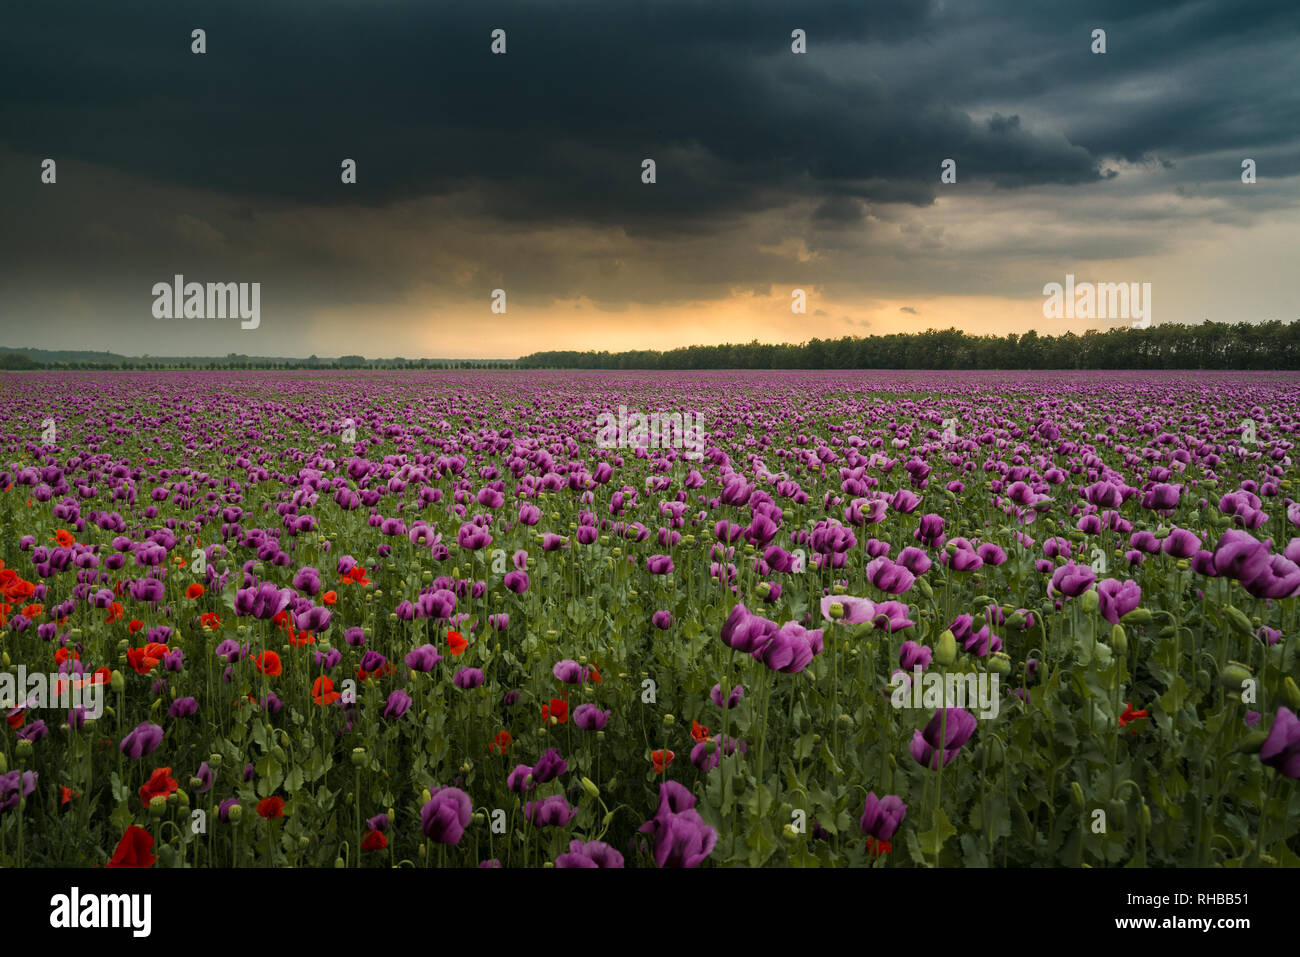 Opium poppy field with overcast dramatic sky Stock Photo